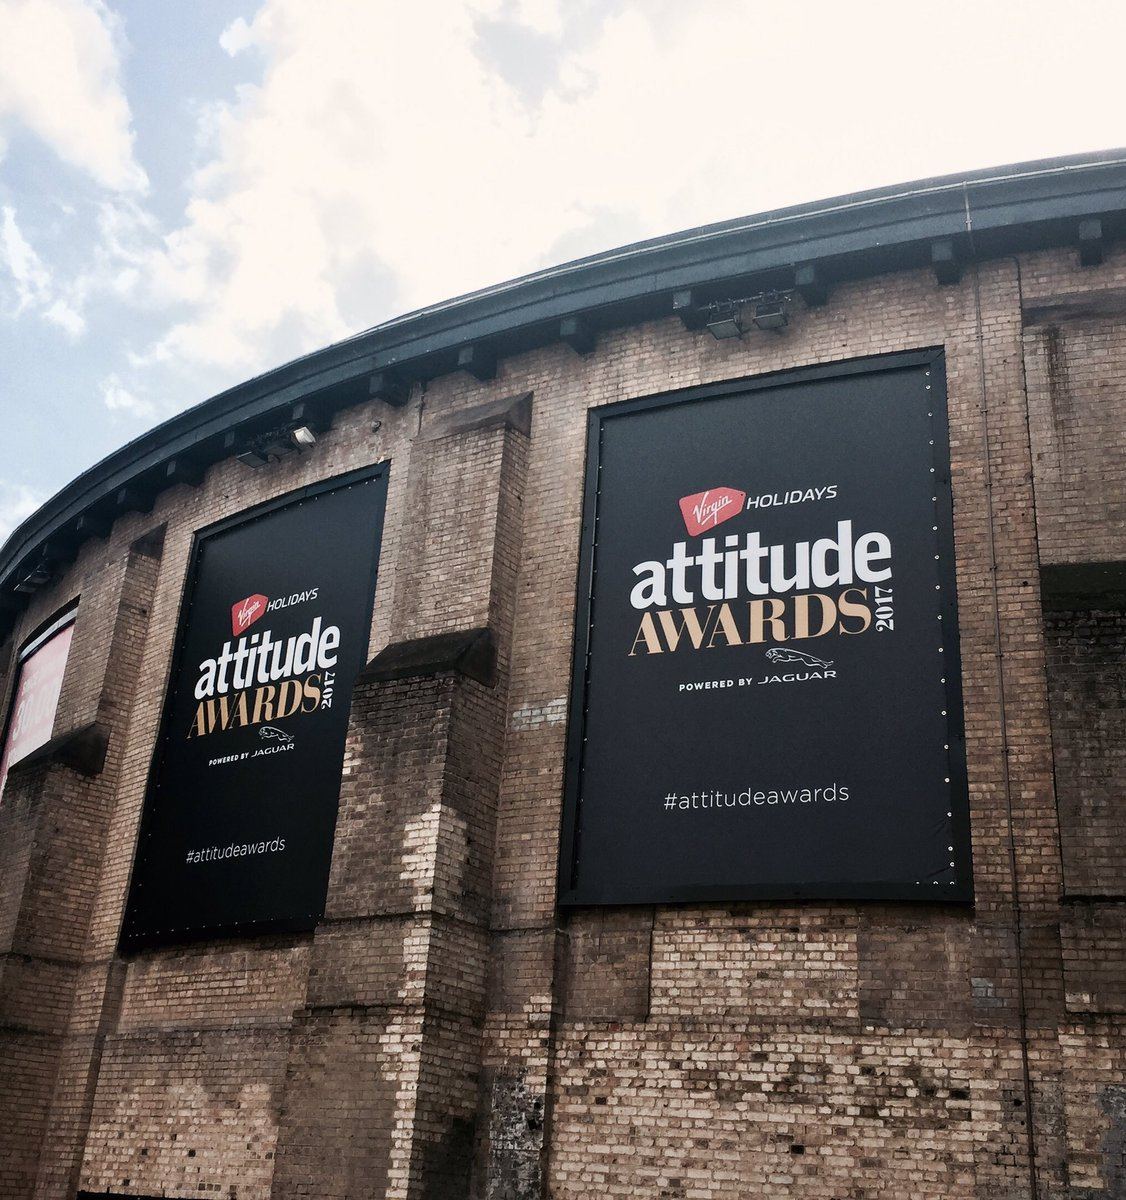 As the publisher of this great magazine. This makes us very proud indeed. Not long to go! #AttitudeAwards #camdenroundhouse https://t.co/ysZTSSaQxs